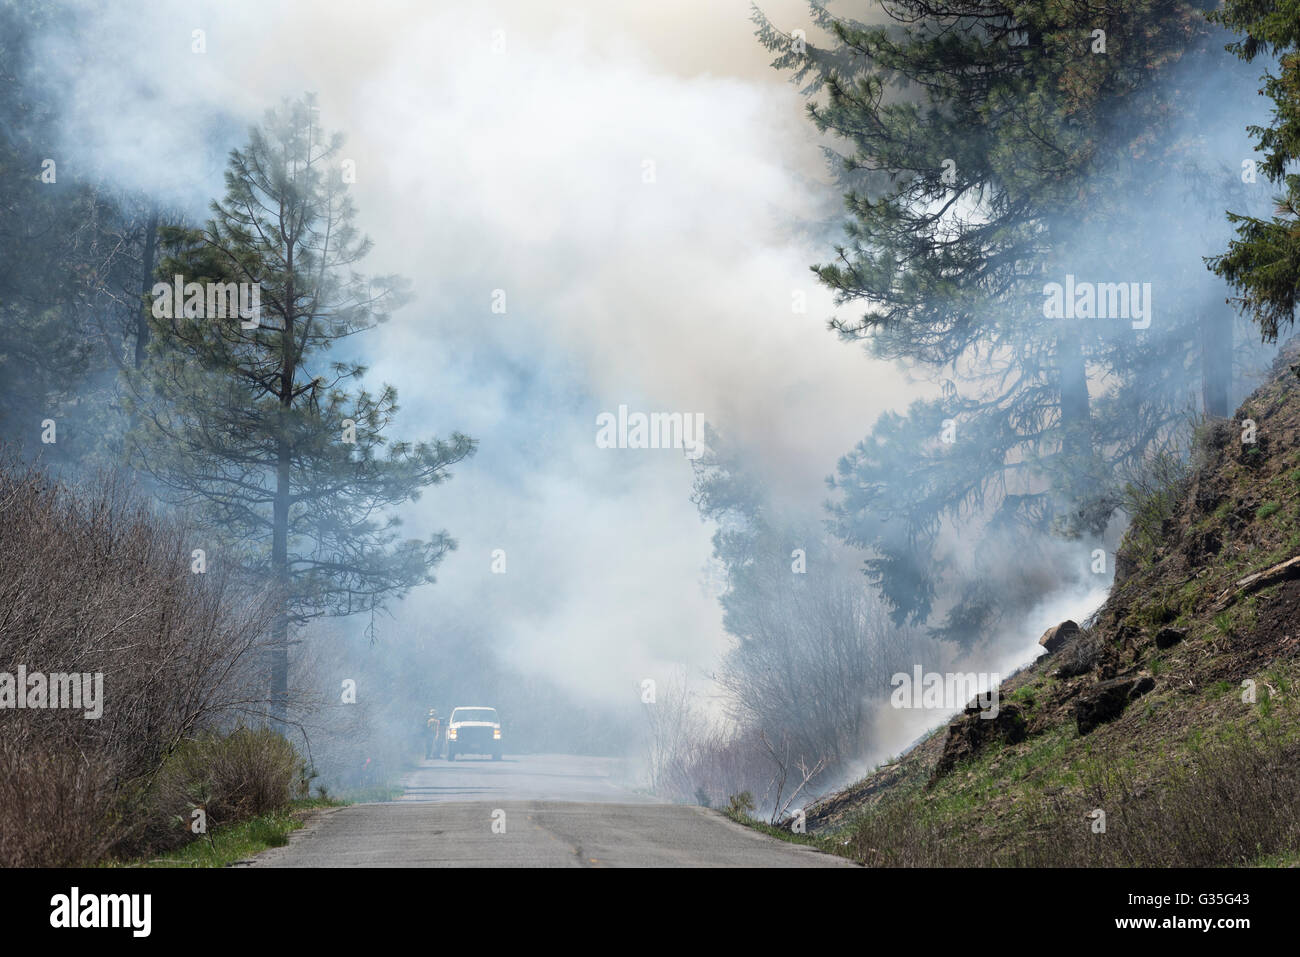 U.S. Forest Service crew monitoring a controlled burn in Oregon's Ochoco Mountains. - Stock Image